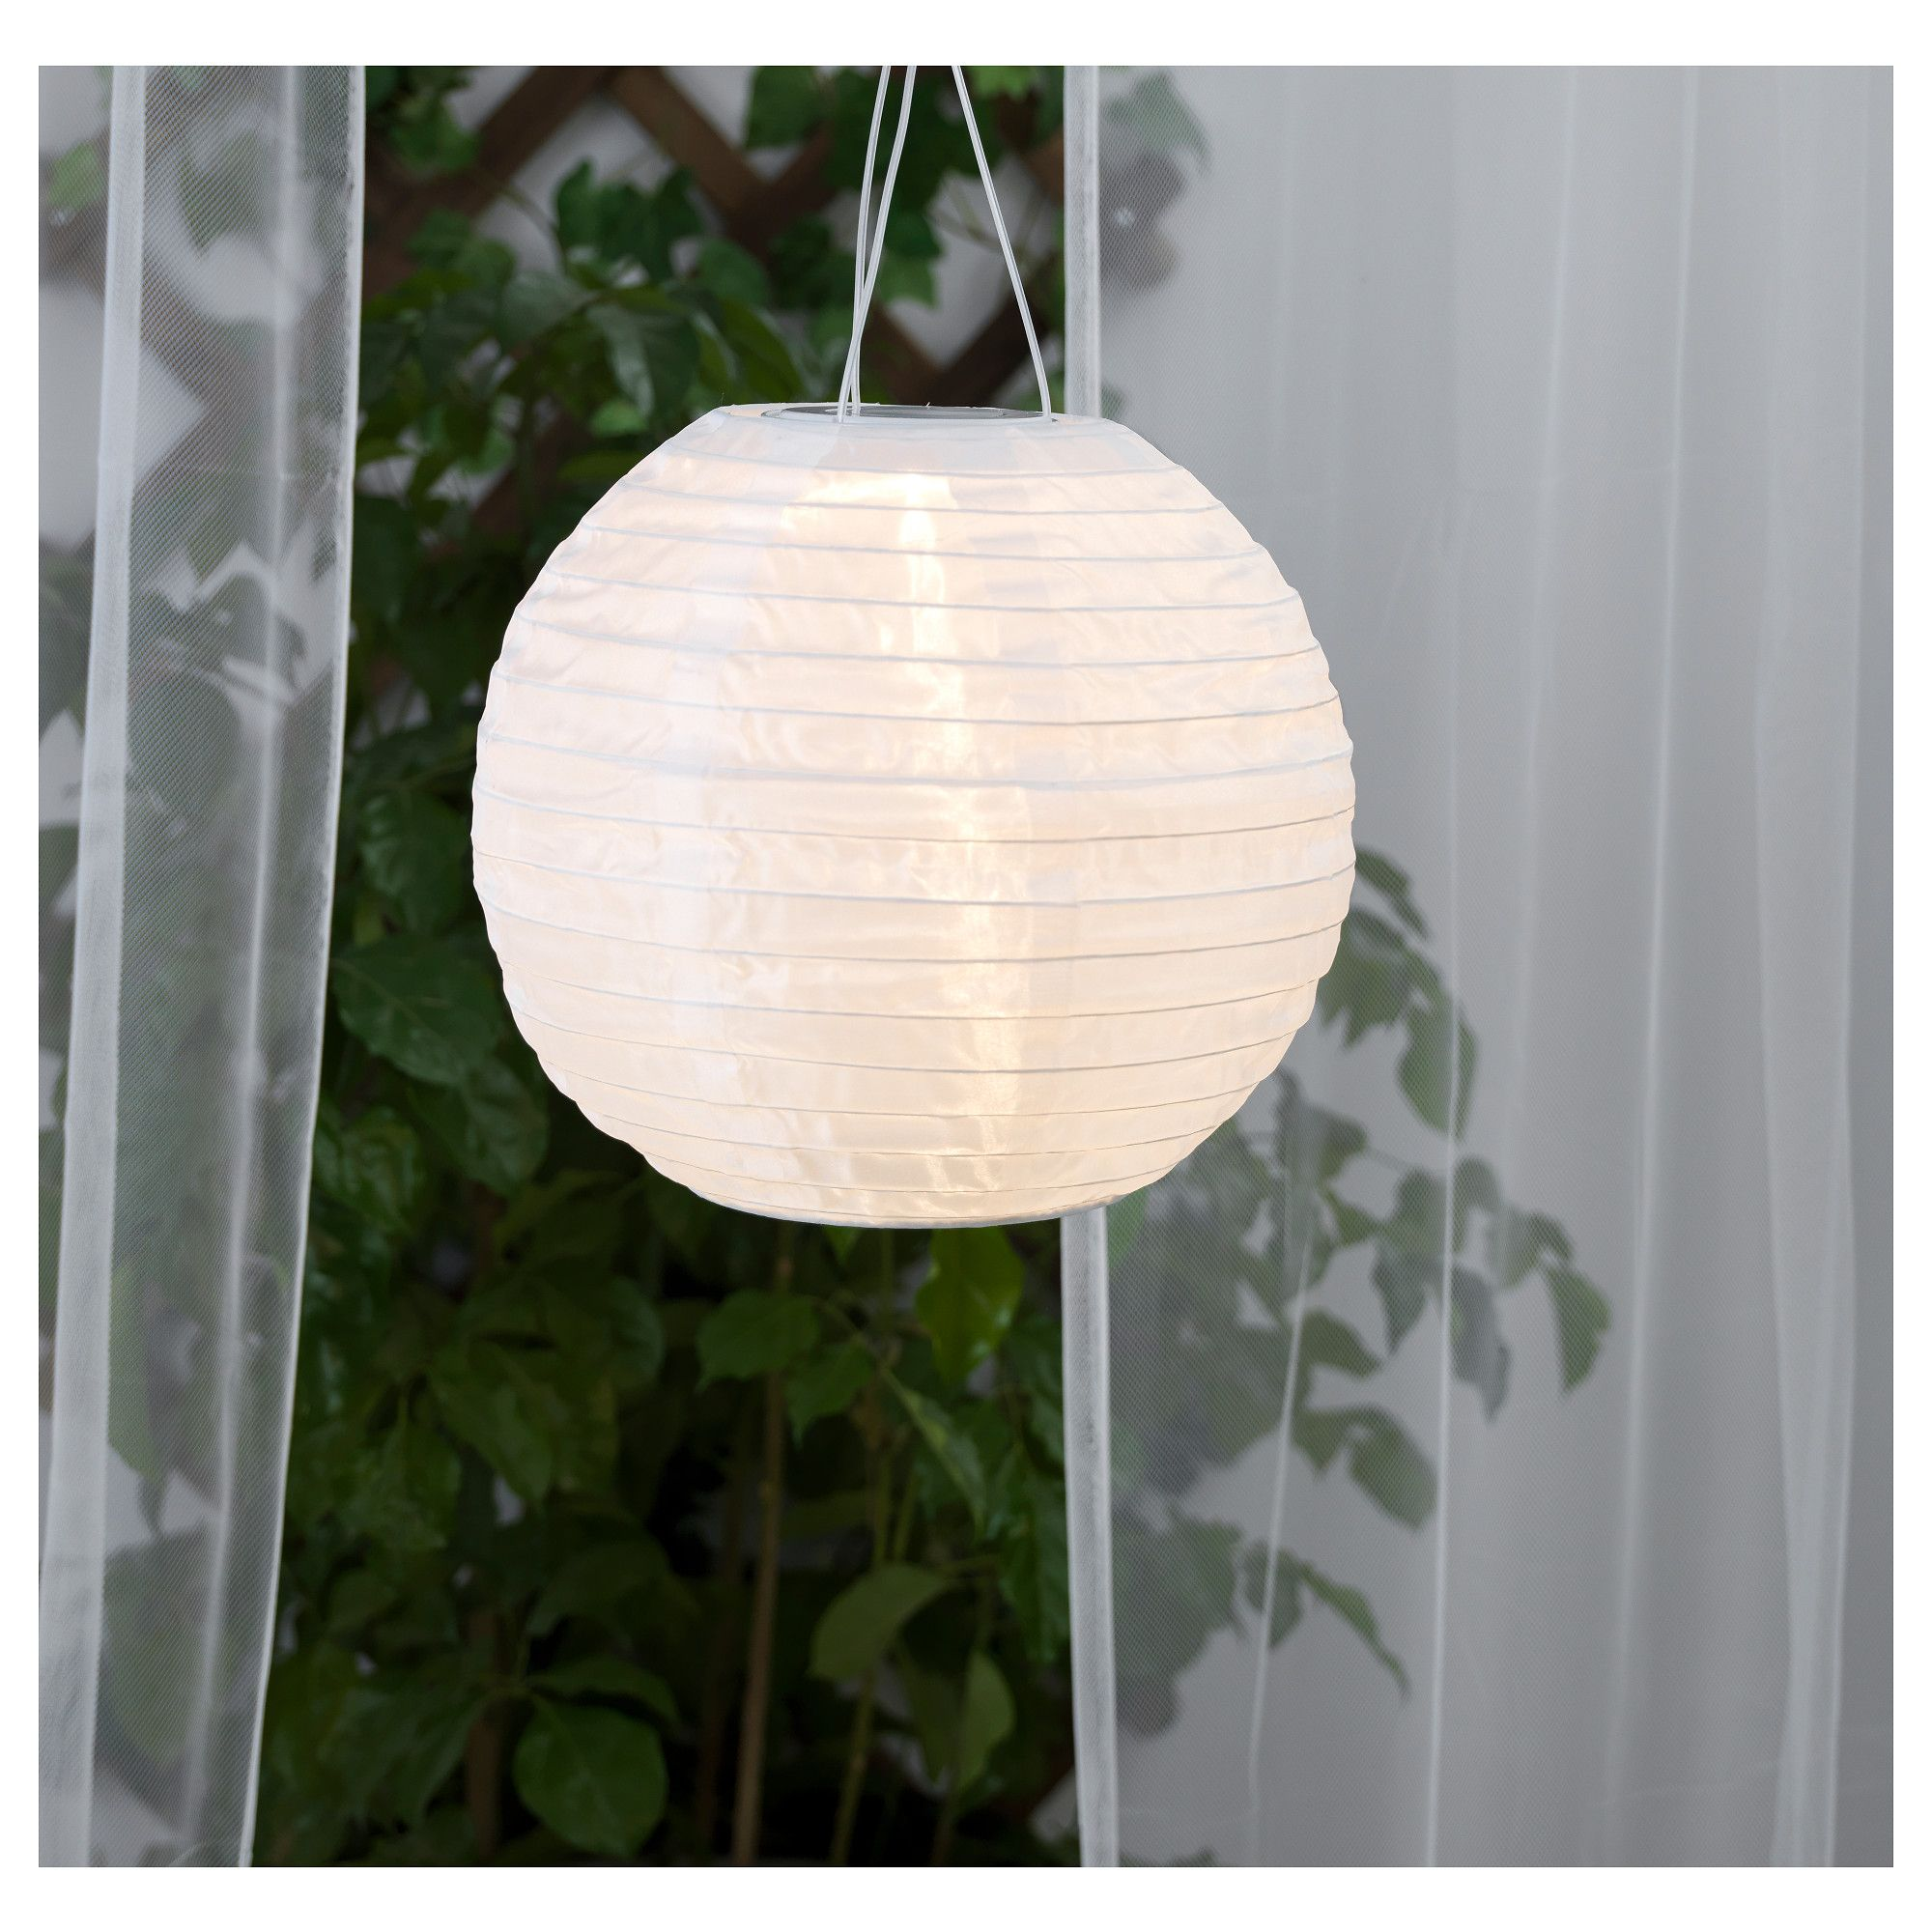 Lampe Pas Cher Ikea Solvinden Solar Powered Pendant Lamp Ikea Outdoors Pendant